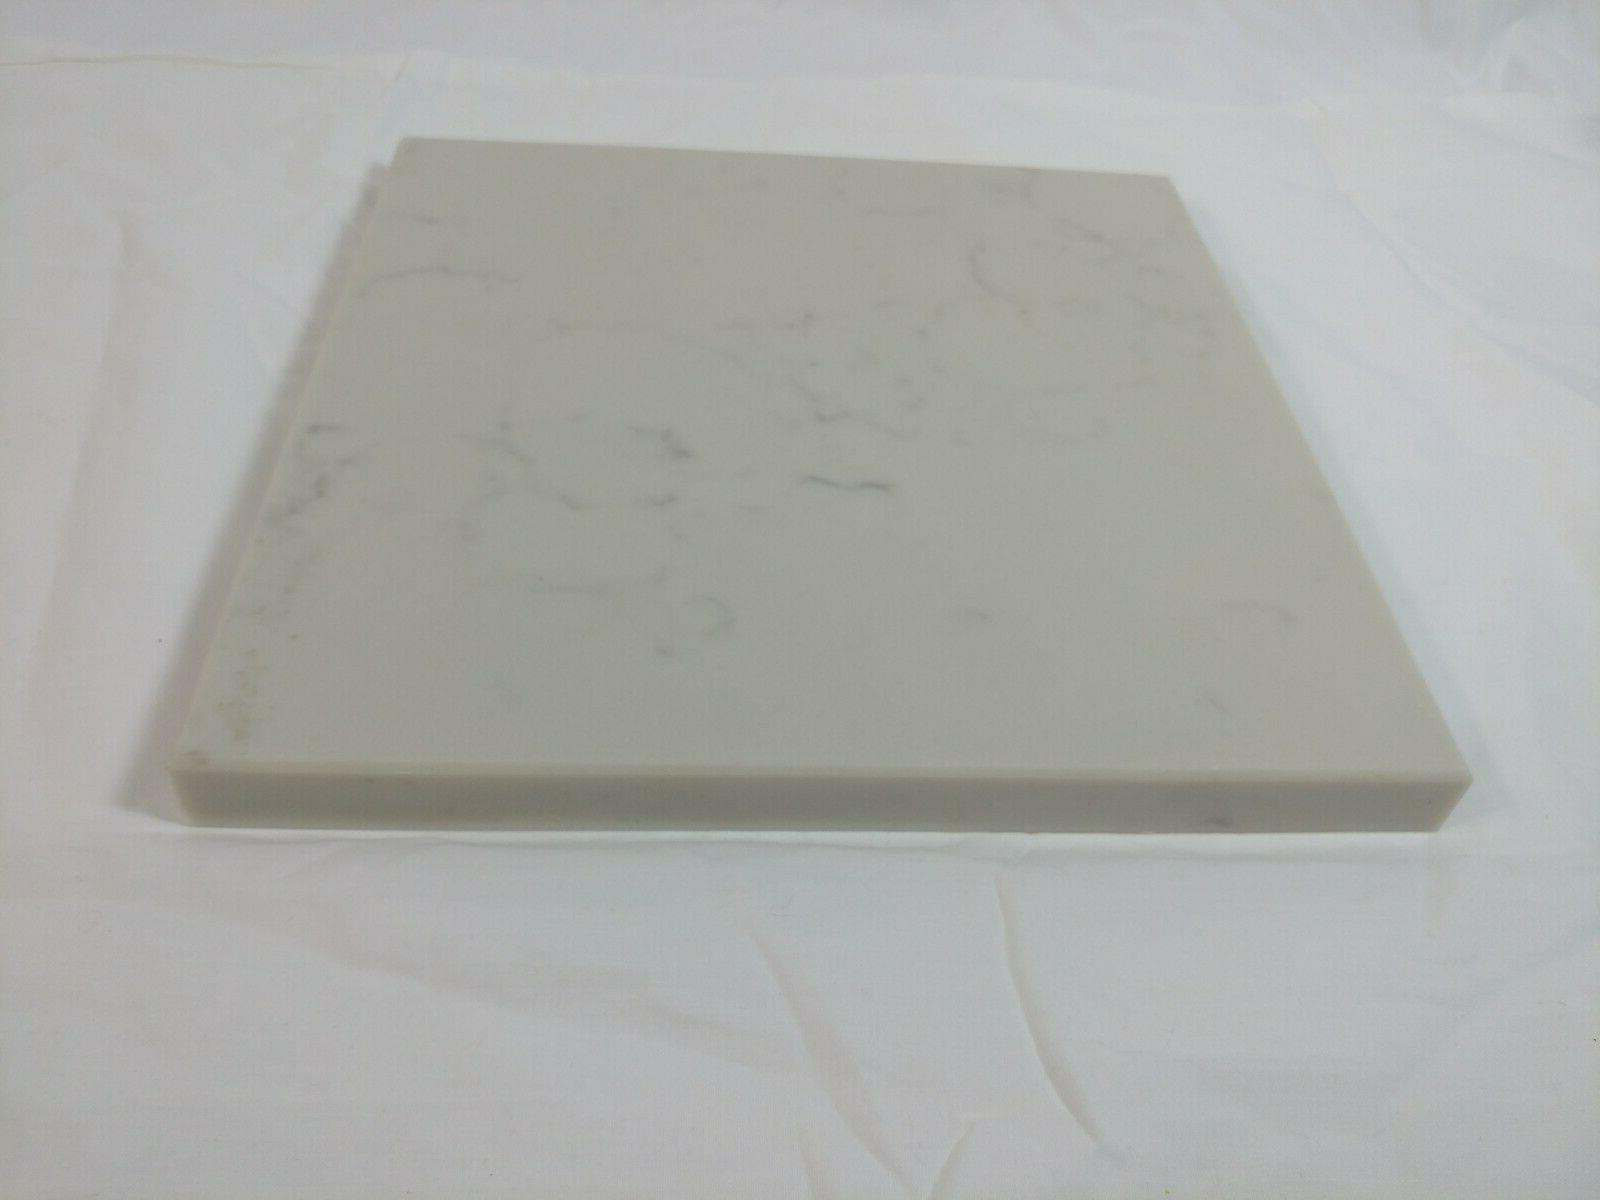 Quartz cheese marble 10x10 leathering